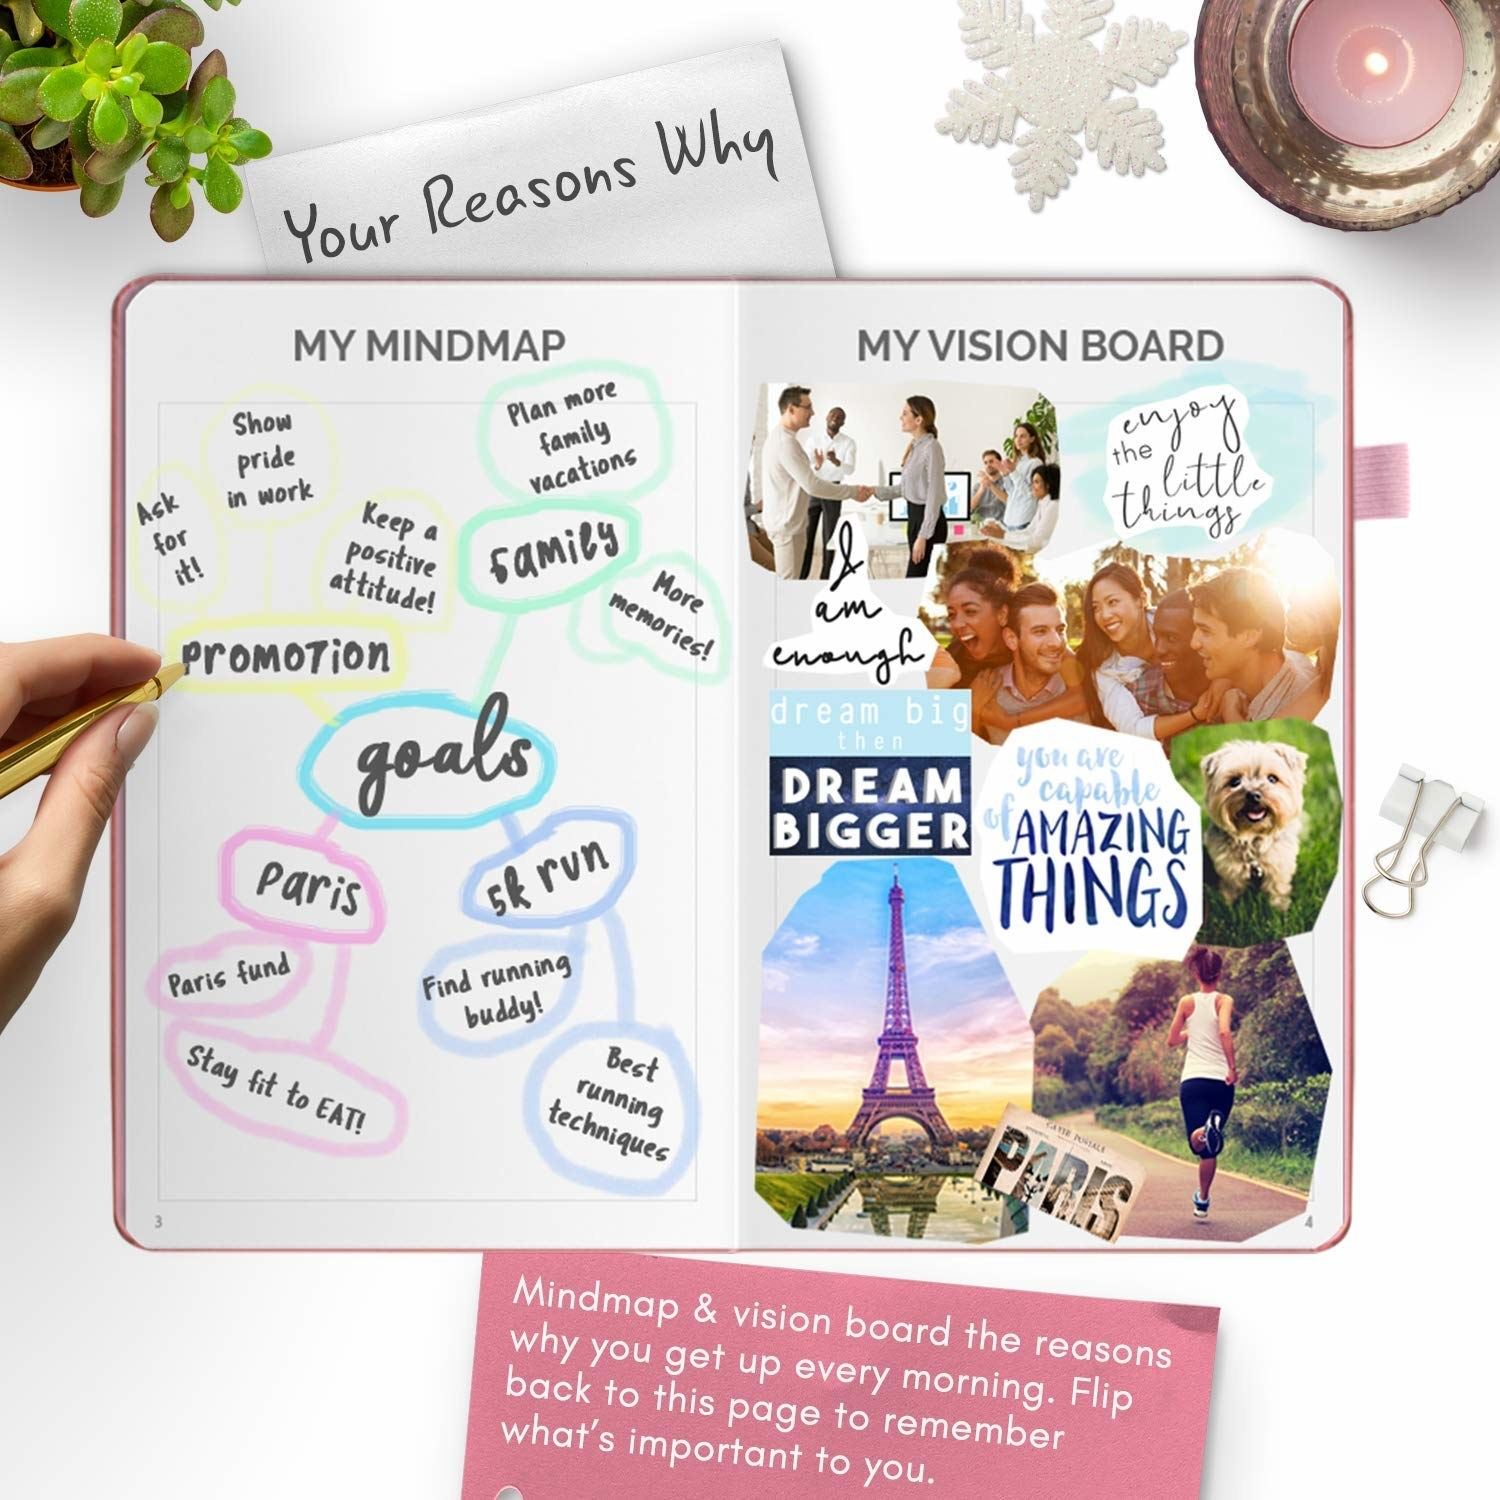 The inside of the planner with a vision board laid out on the pages